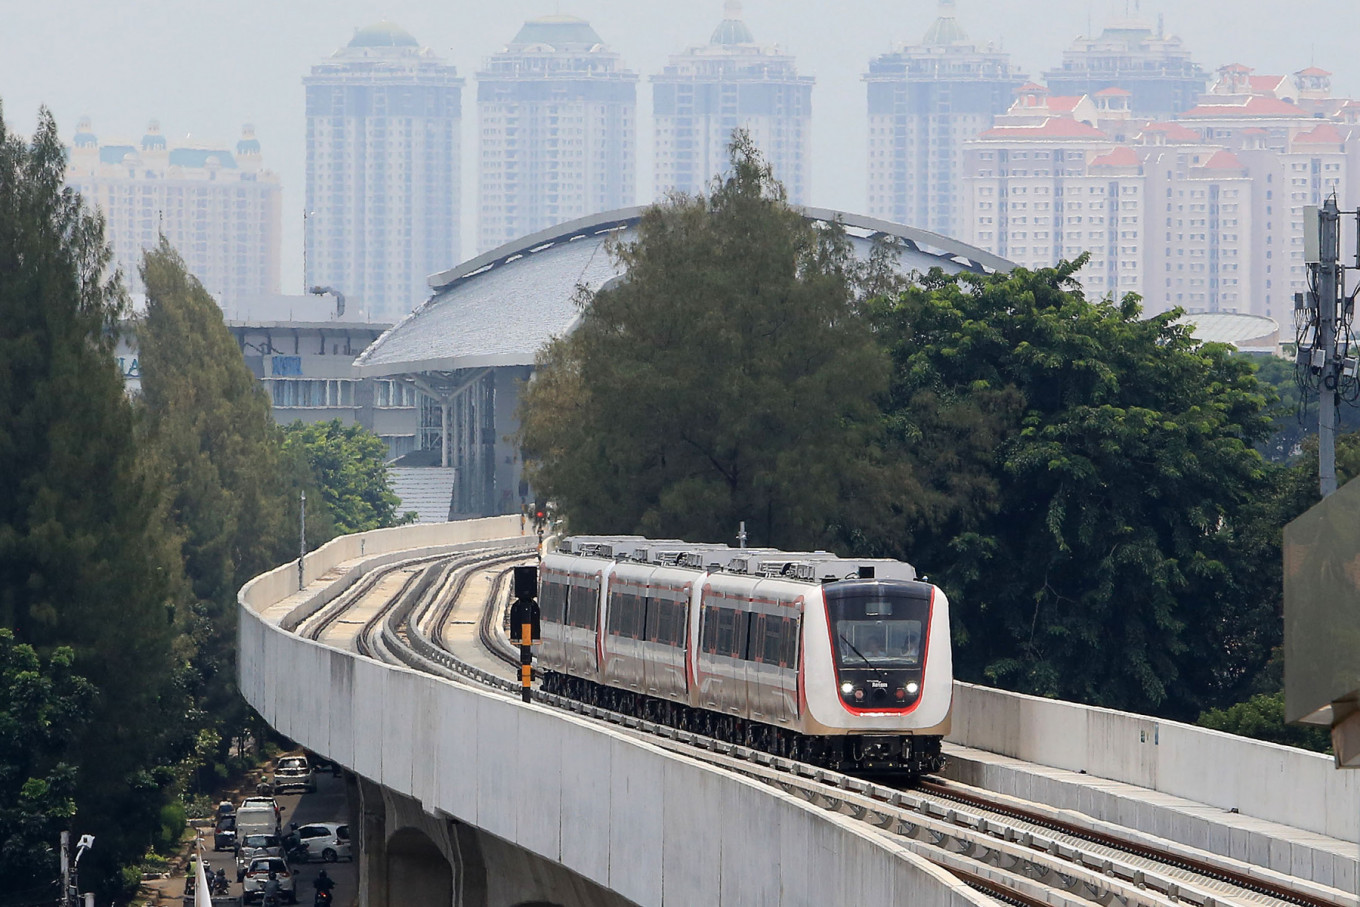 Ministry Demands Jakarta Revise Lrt Plan To Avoid Overlap With Mrt City The Jakarta Post